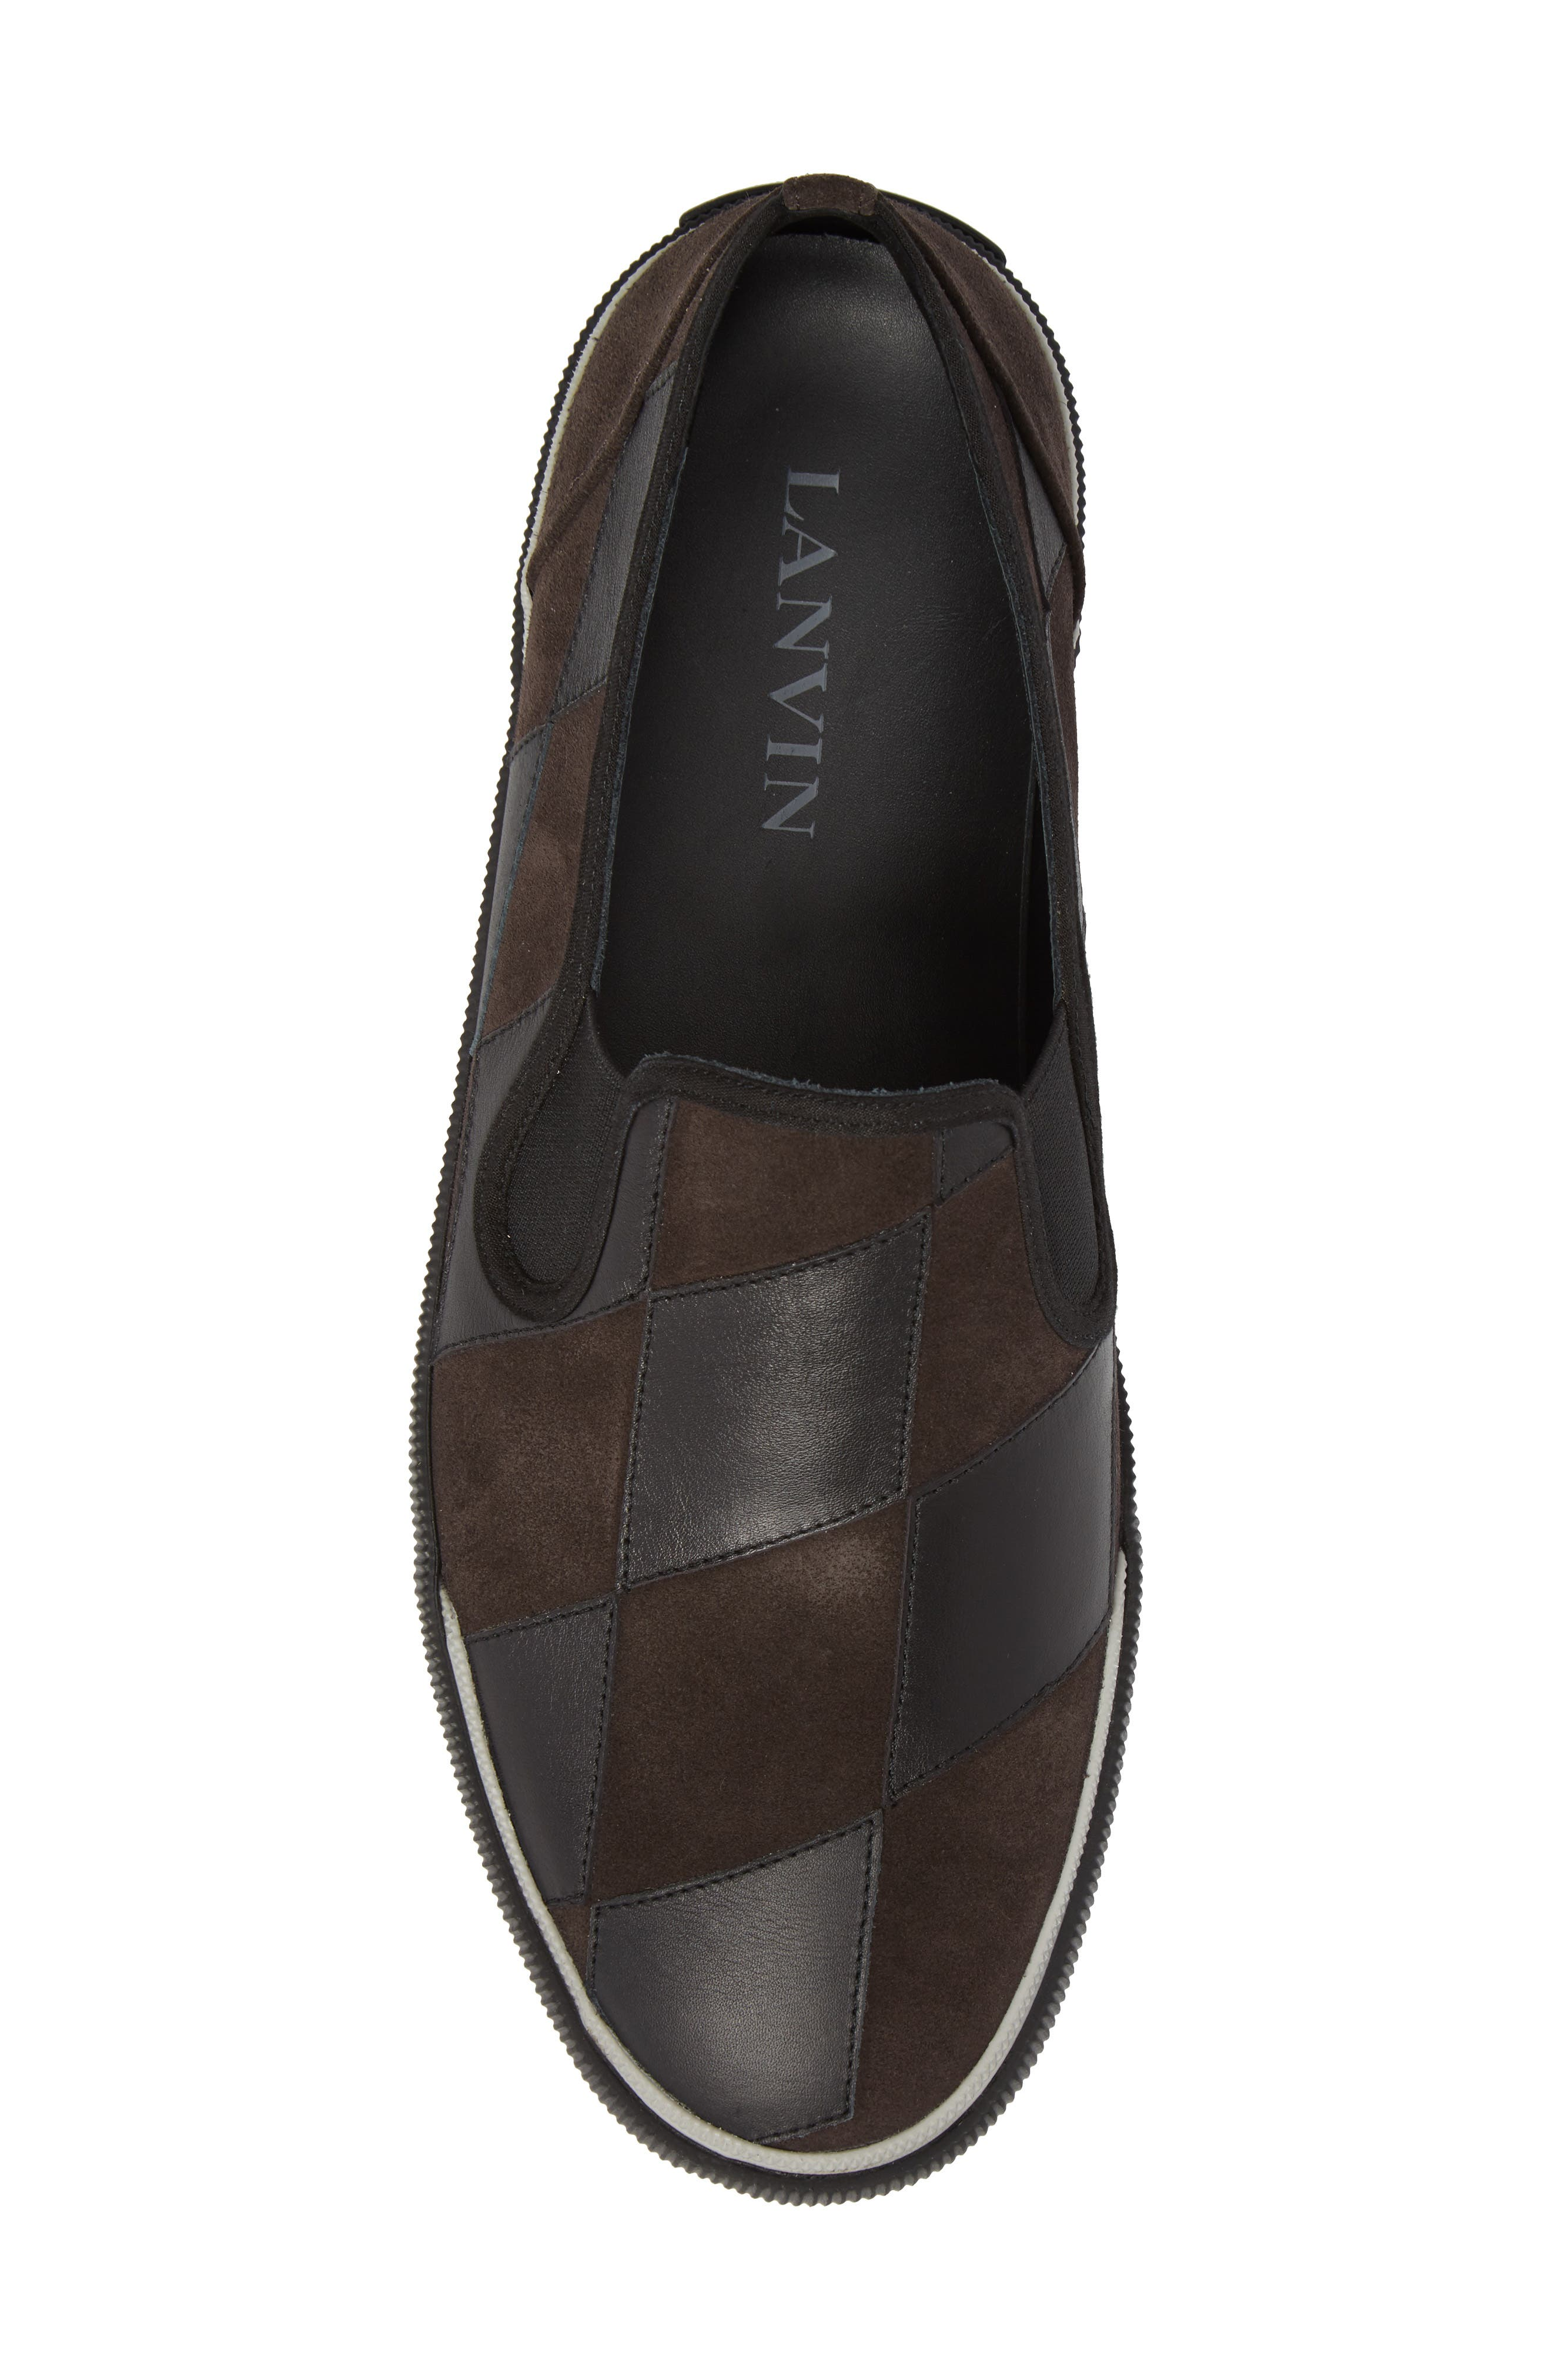 Diamond Patchwork Slip-On Sneaker,                             Alternate thumbnail 5, color,                             Taupe/ Black Leather/ Suede